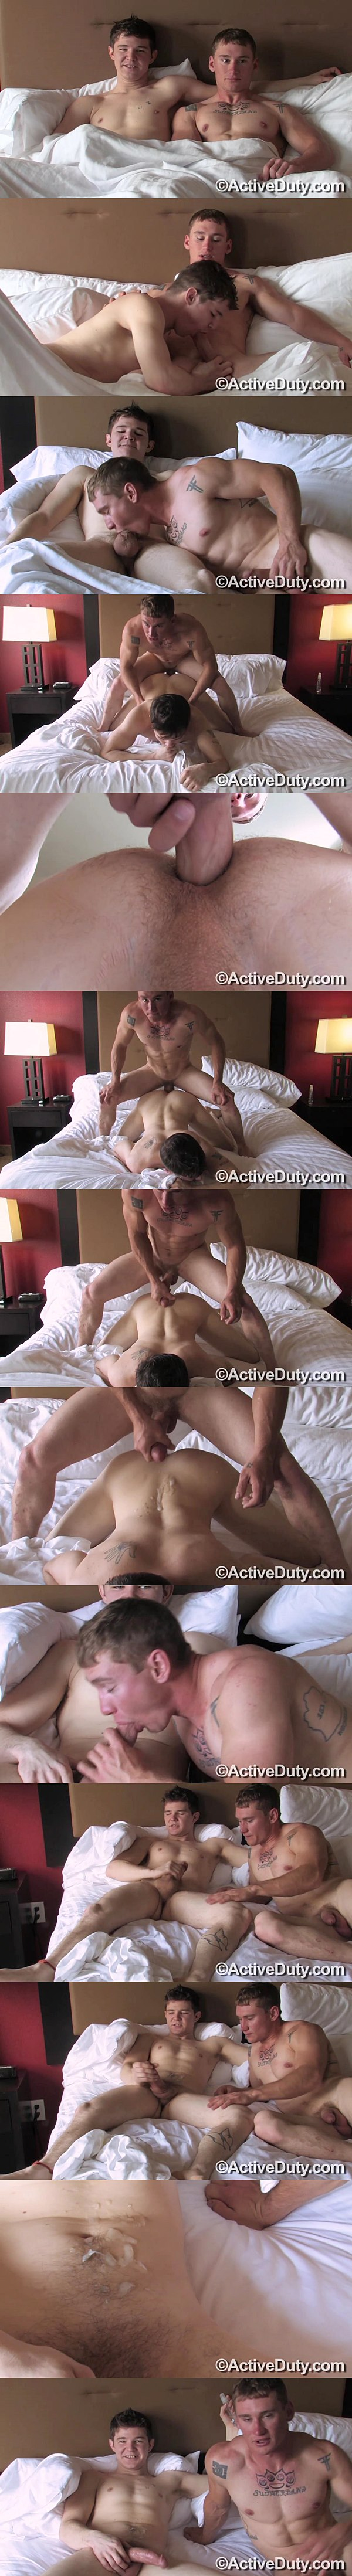 Handsome military dude Tim barebacks Chris in his tight manhole before they blow two big loads at Activeduty 02